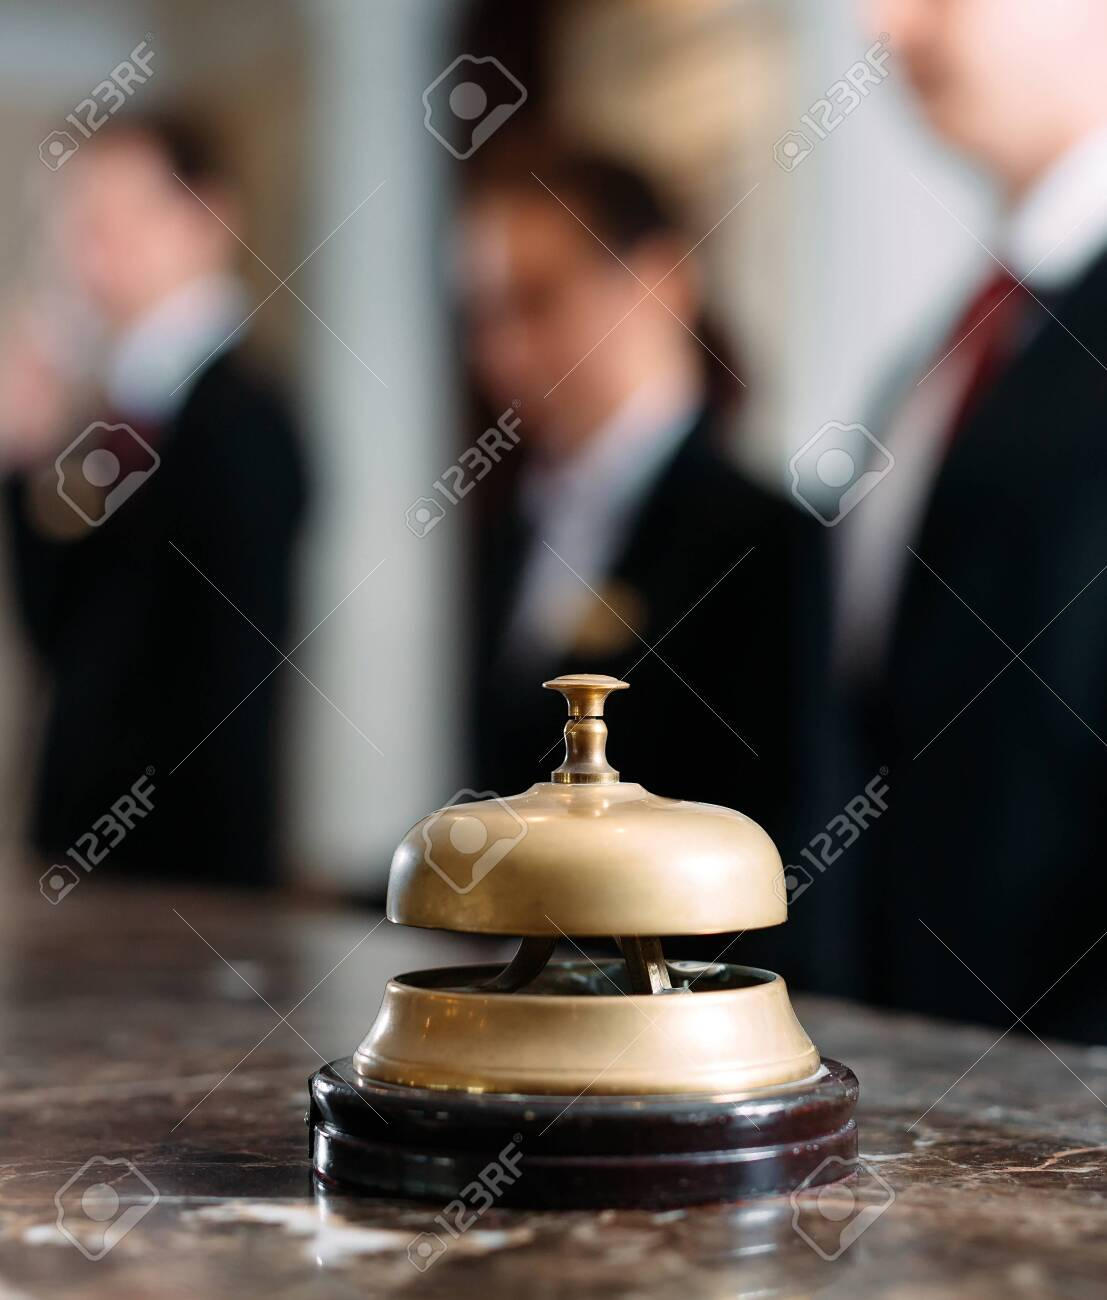 Hotel service bell Concept hotel, travel, room,Modern luxury hotel reception counter desk on background. - 154212485